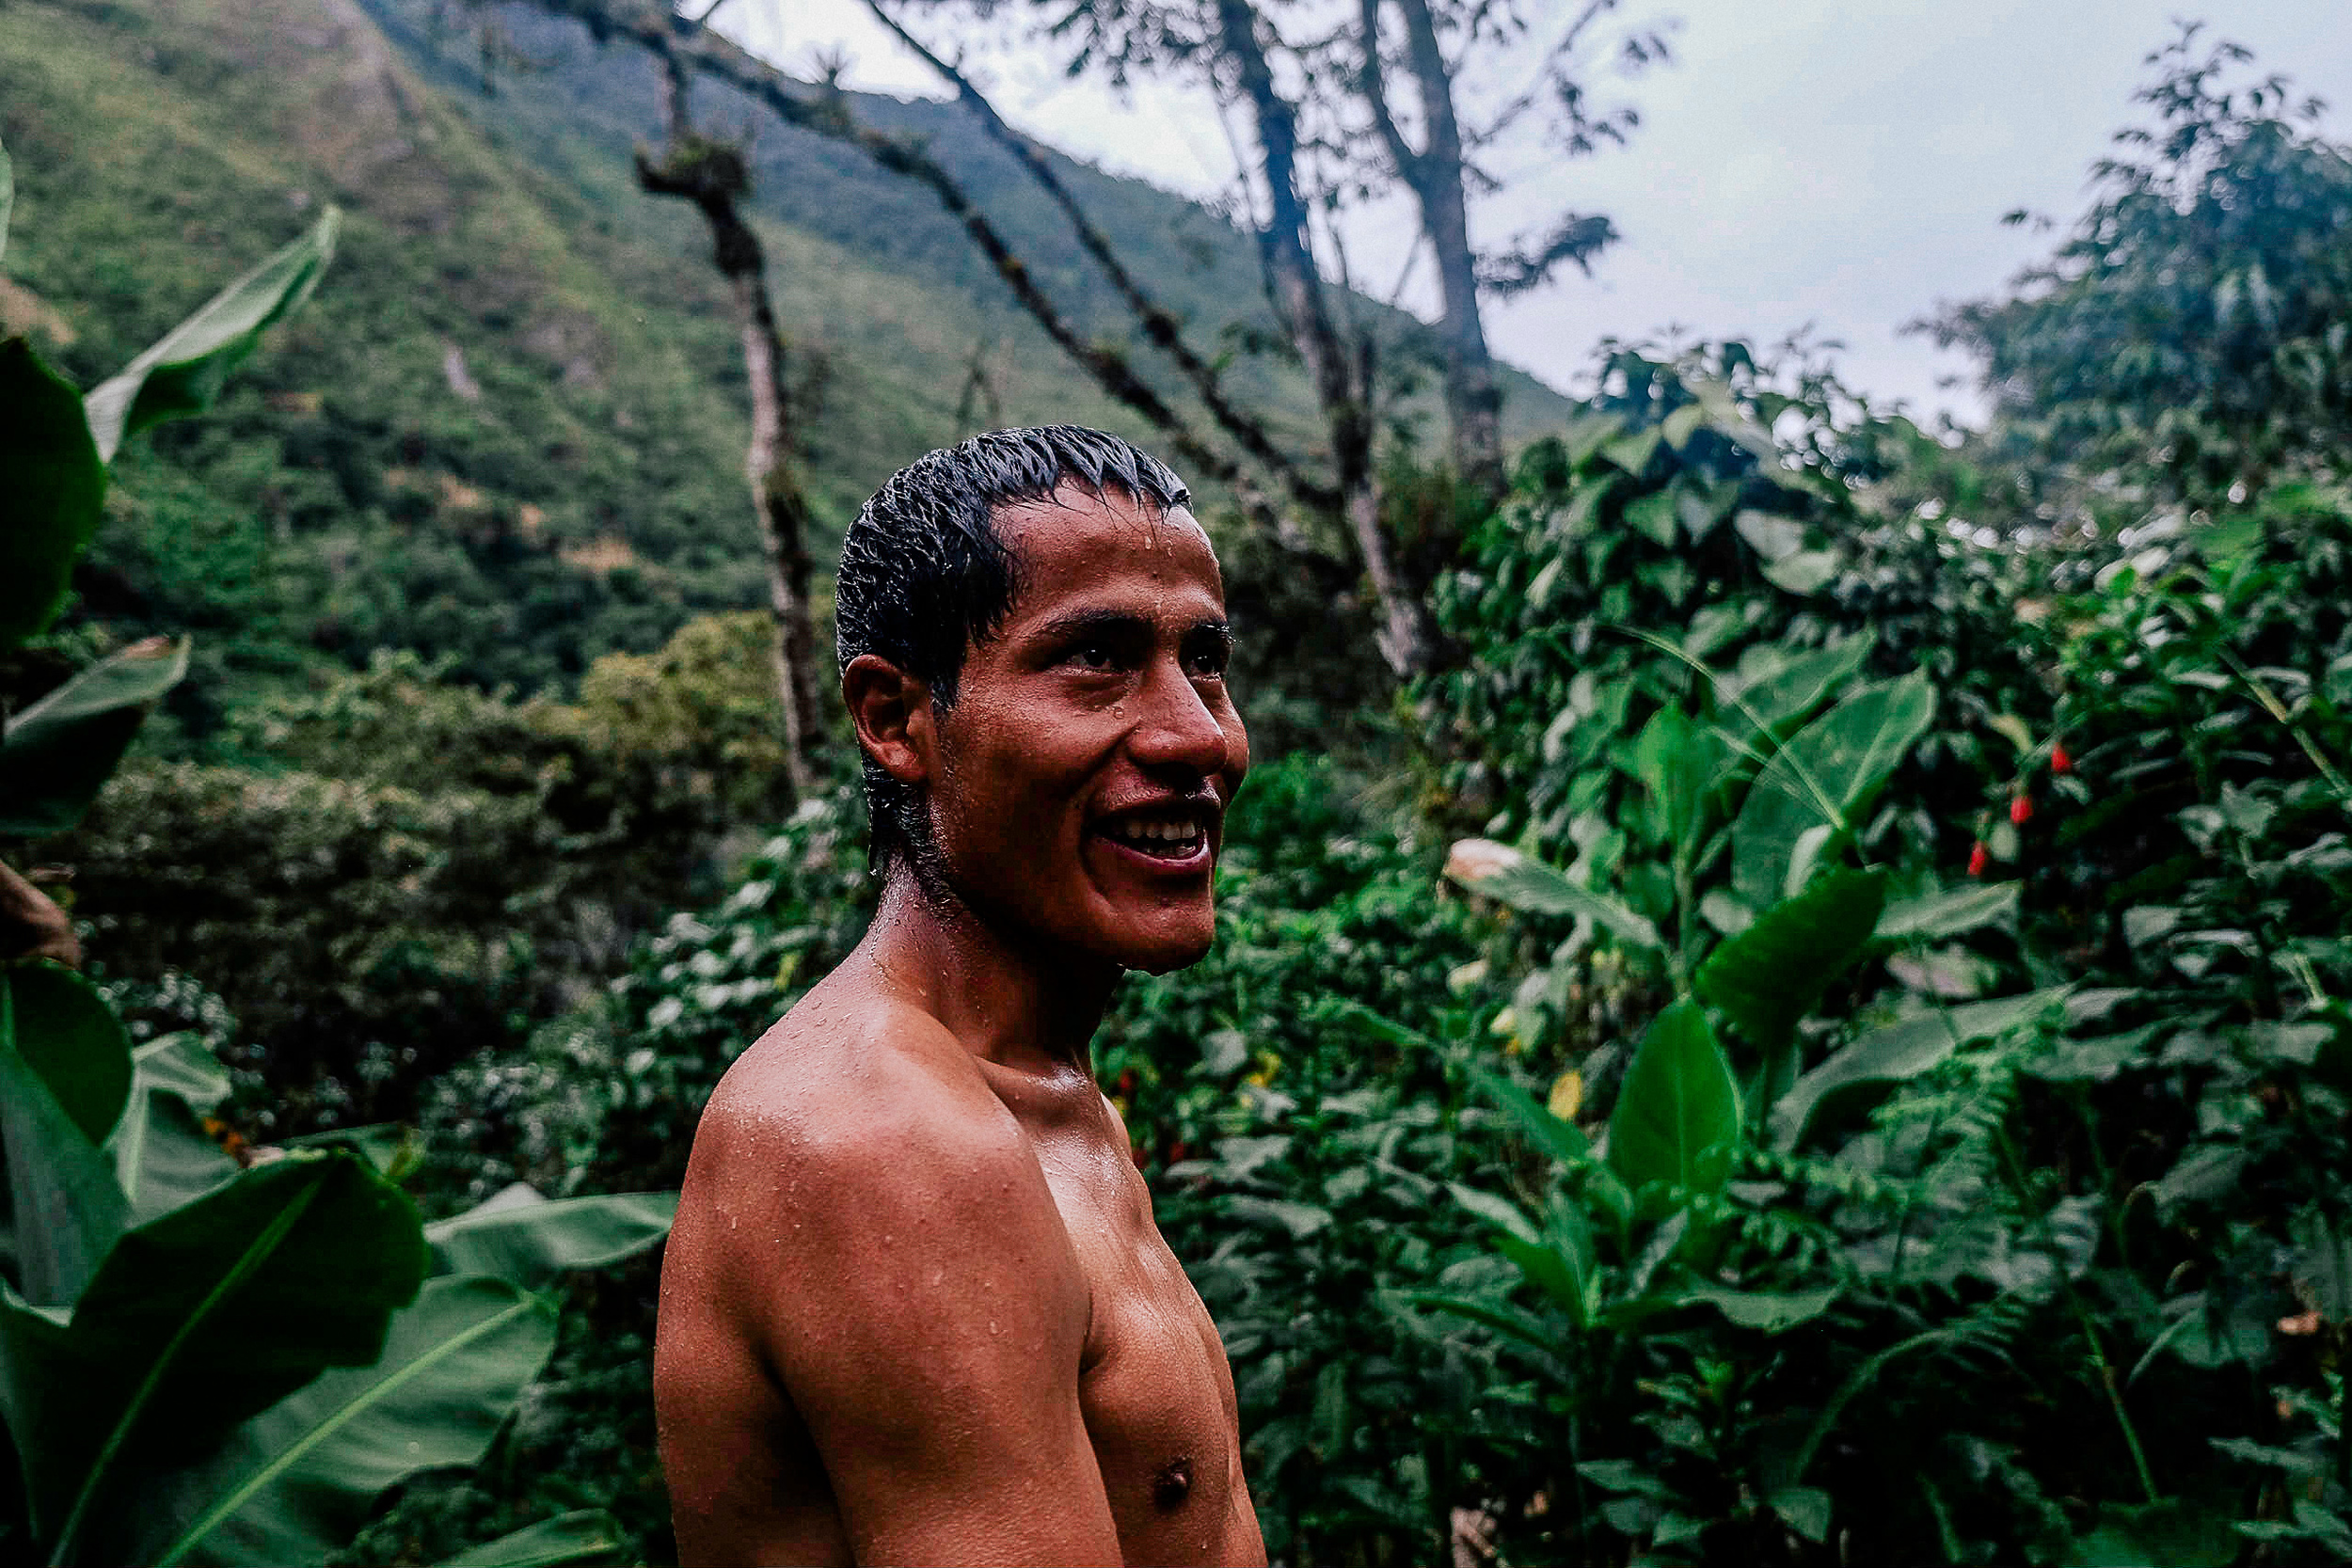 Ruben is one of the guides in training bringing us on this epic journey. On our third night after setting up camp he took us on a mini trek to a nearby stream for a much needed rest.